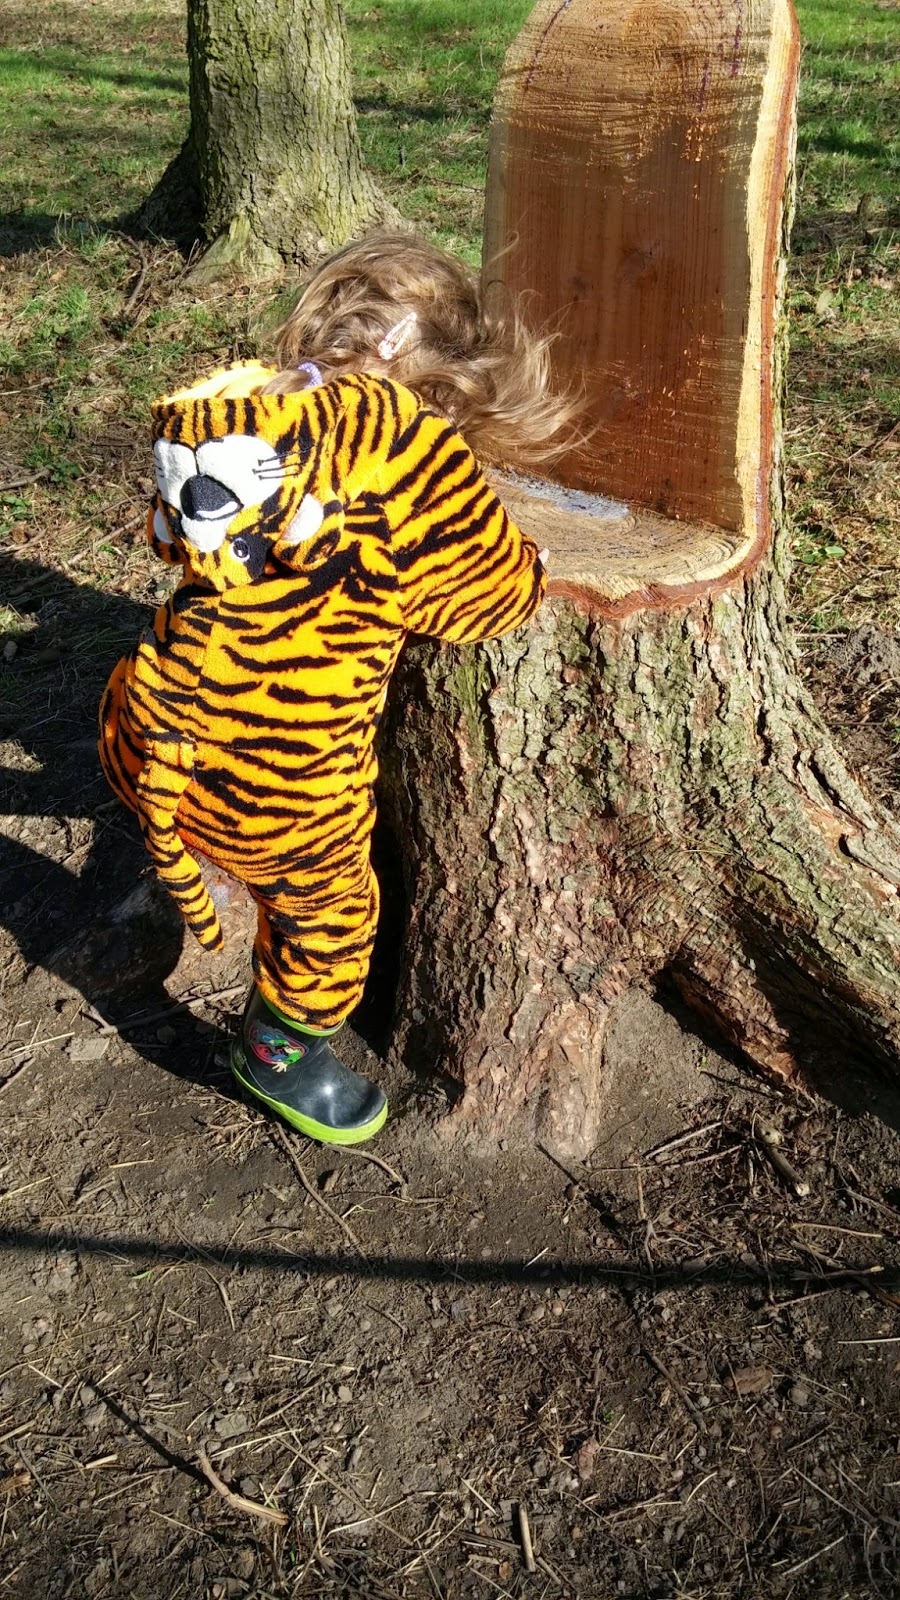 Tiger climbing up the tree